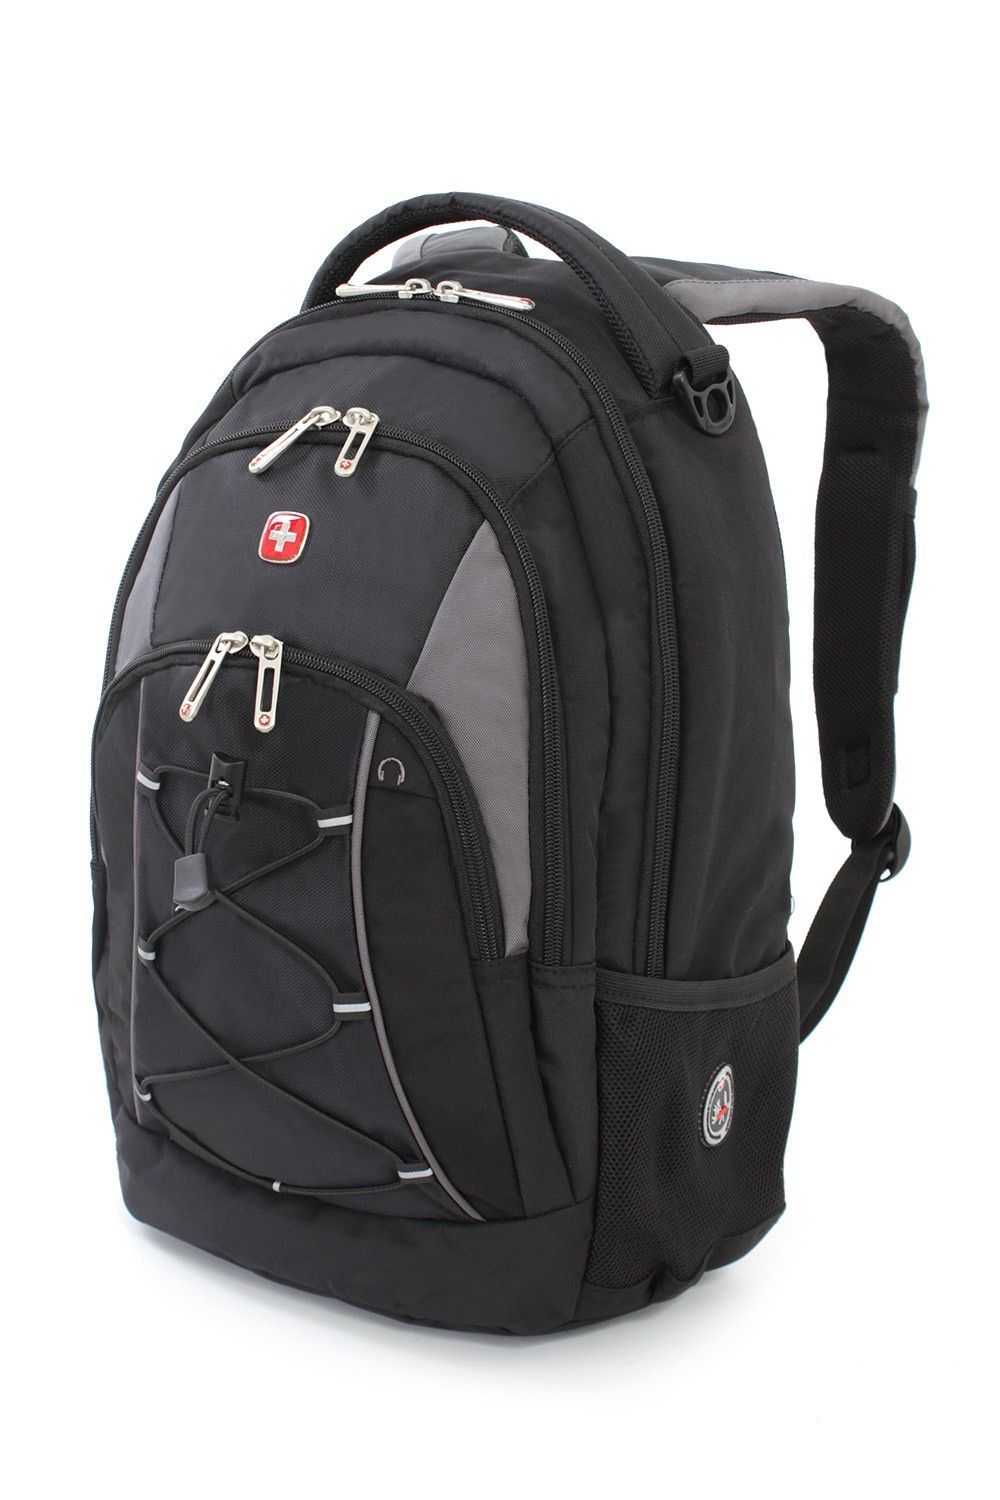 531562600 1186 Laptop Backpack - Black/Gray | Swiss Gear - Backpacks ...